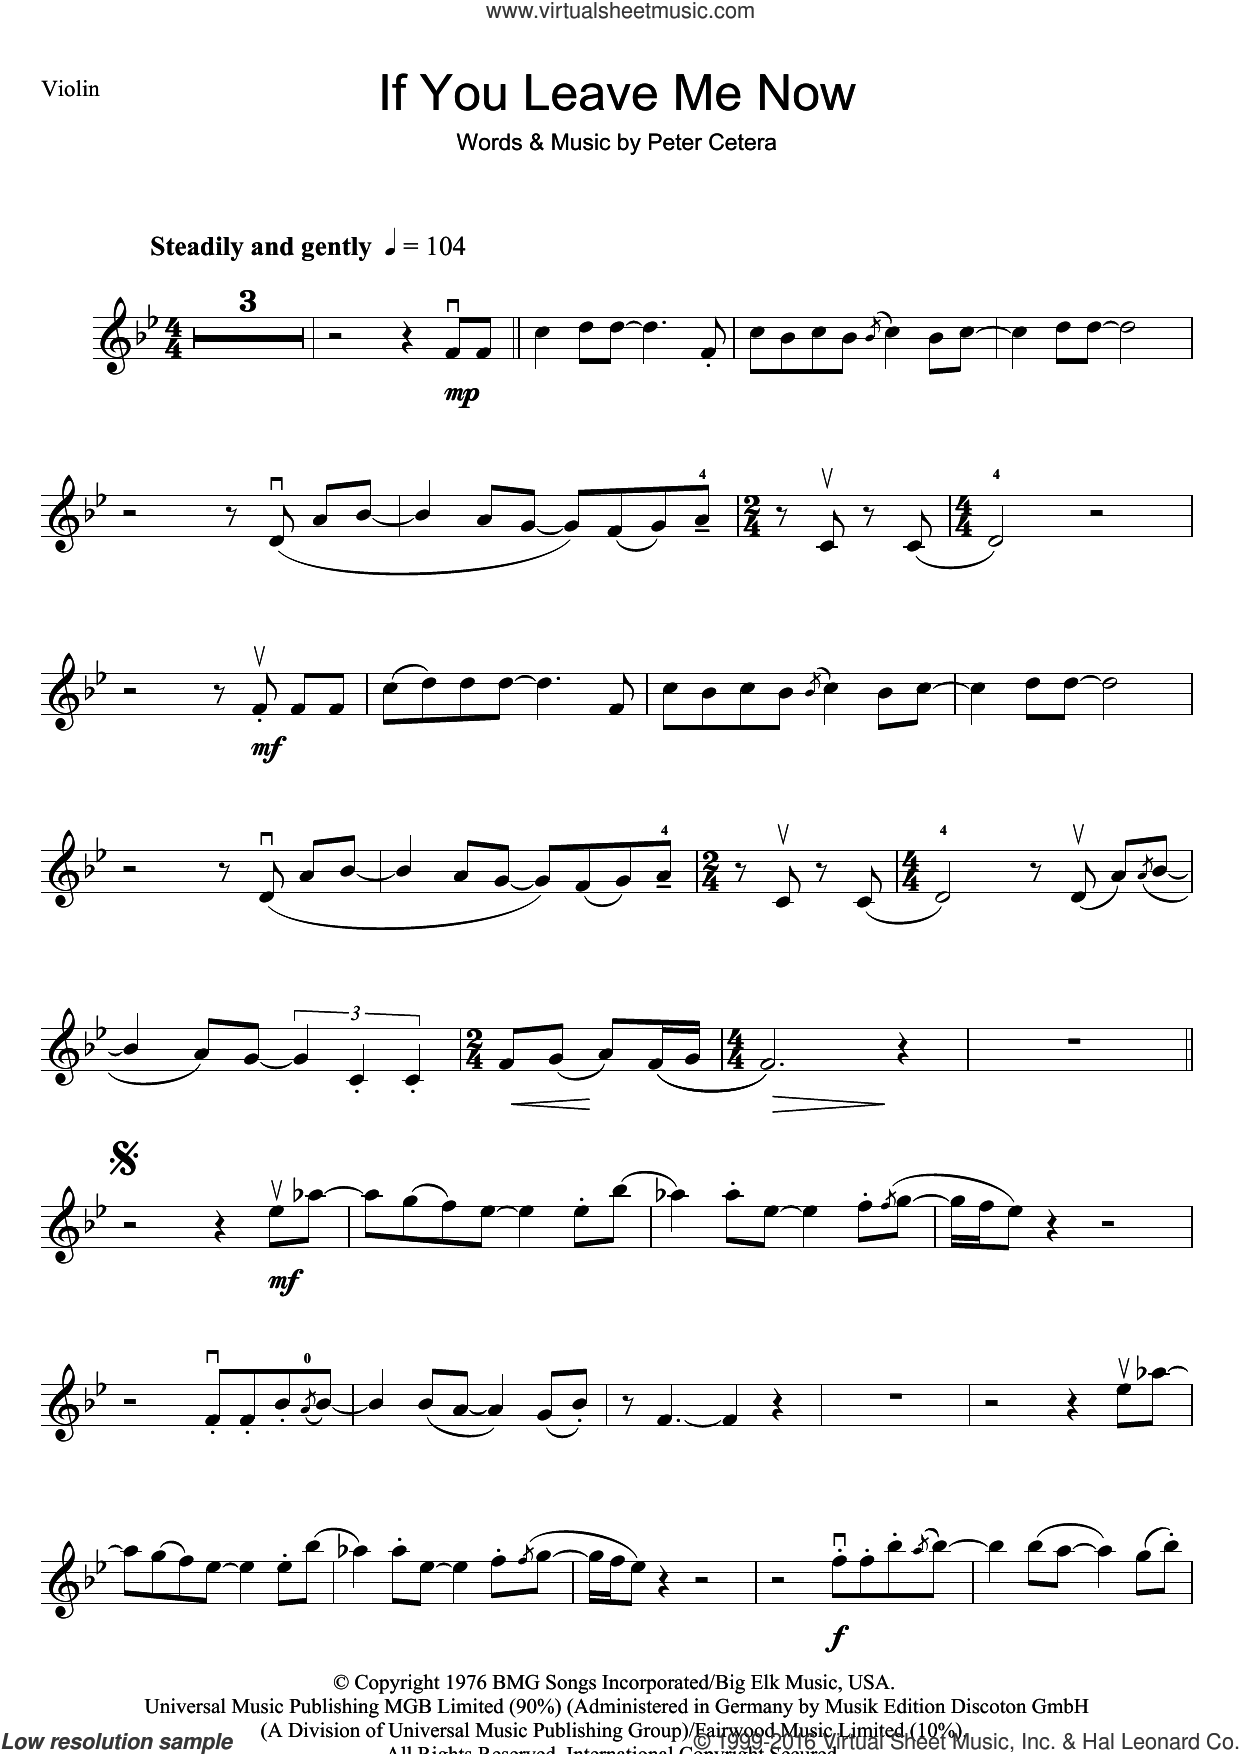 Chicago - If You Leave Me Now sheet music for violin solo [PDF]